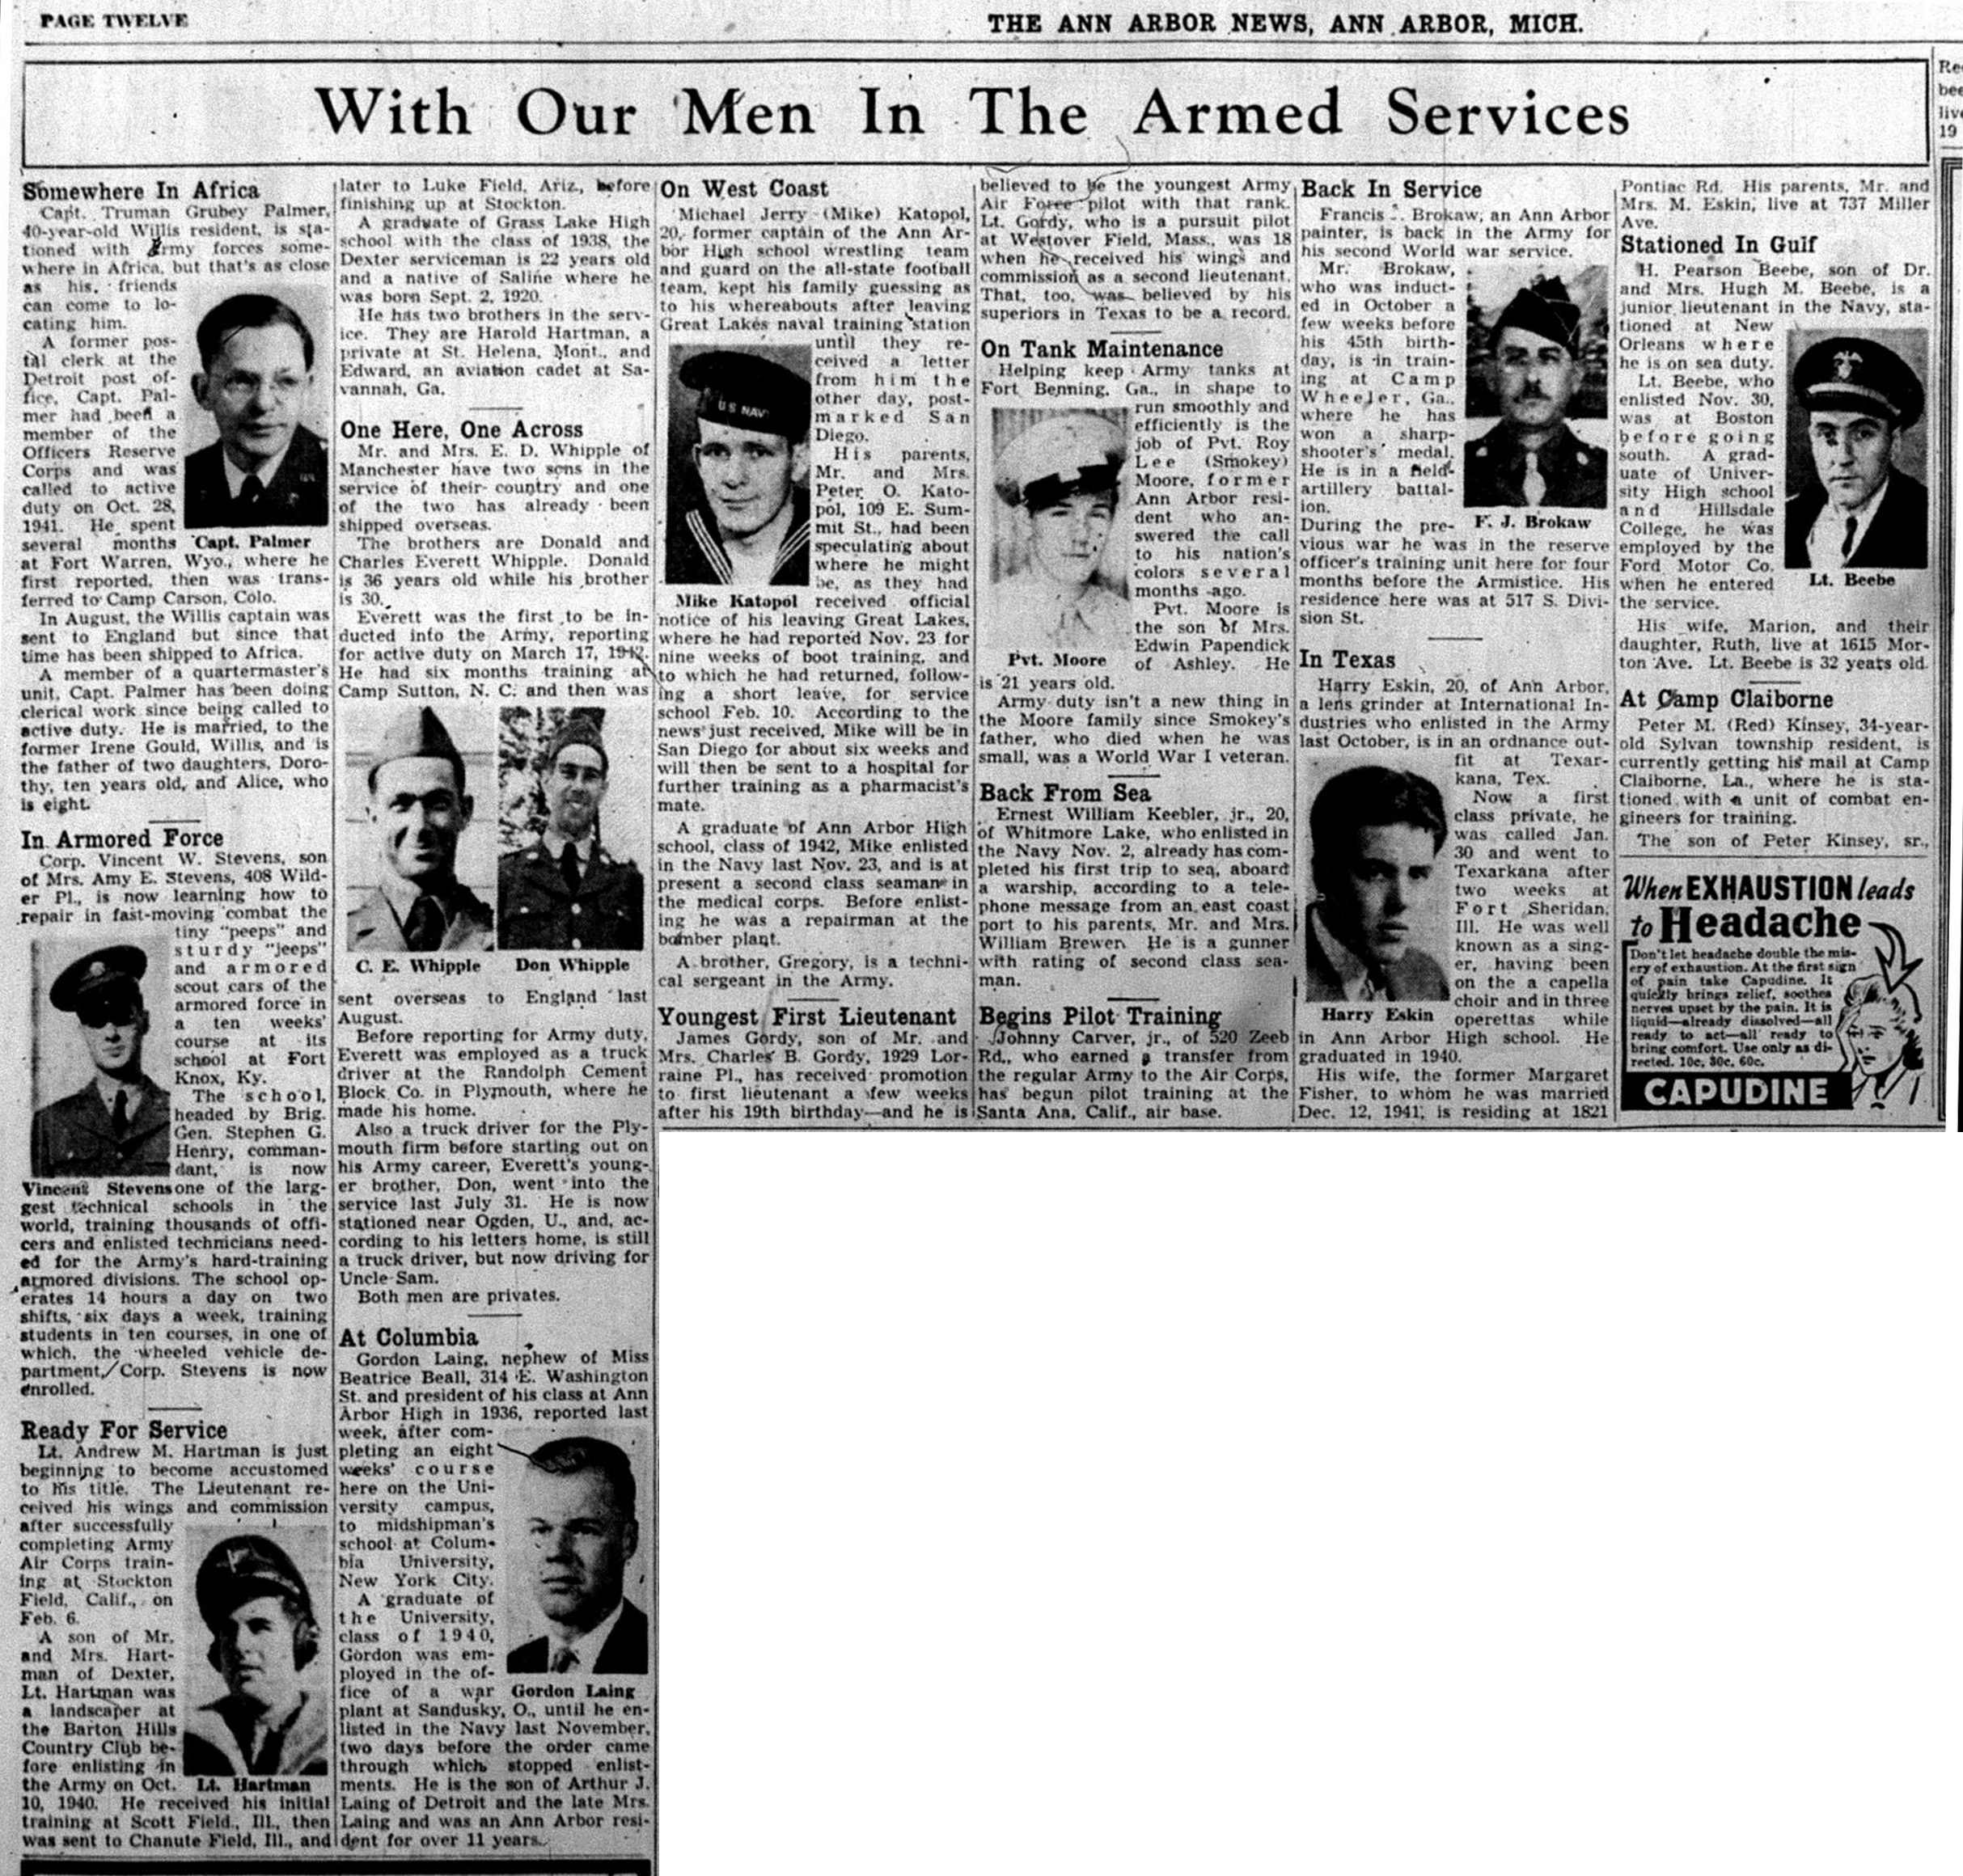 With Our Men In The Armed Services: March 1943 image